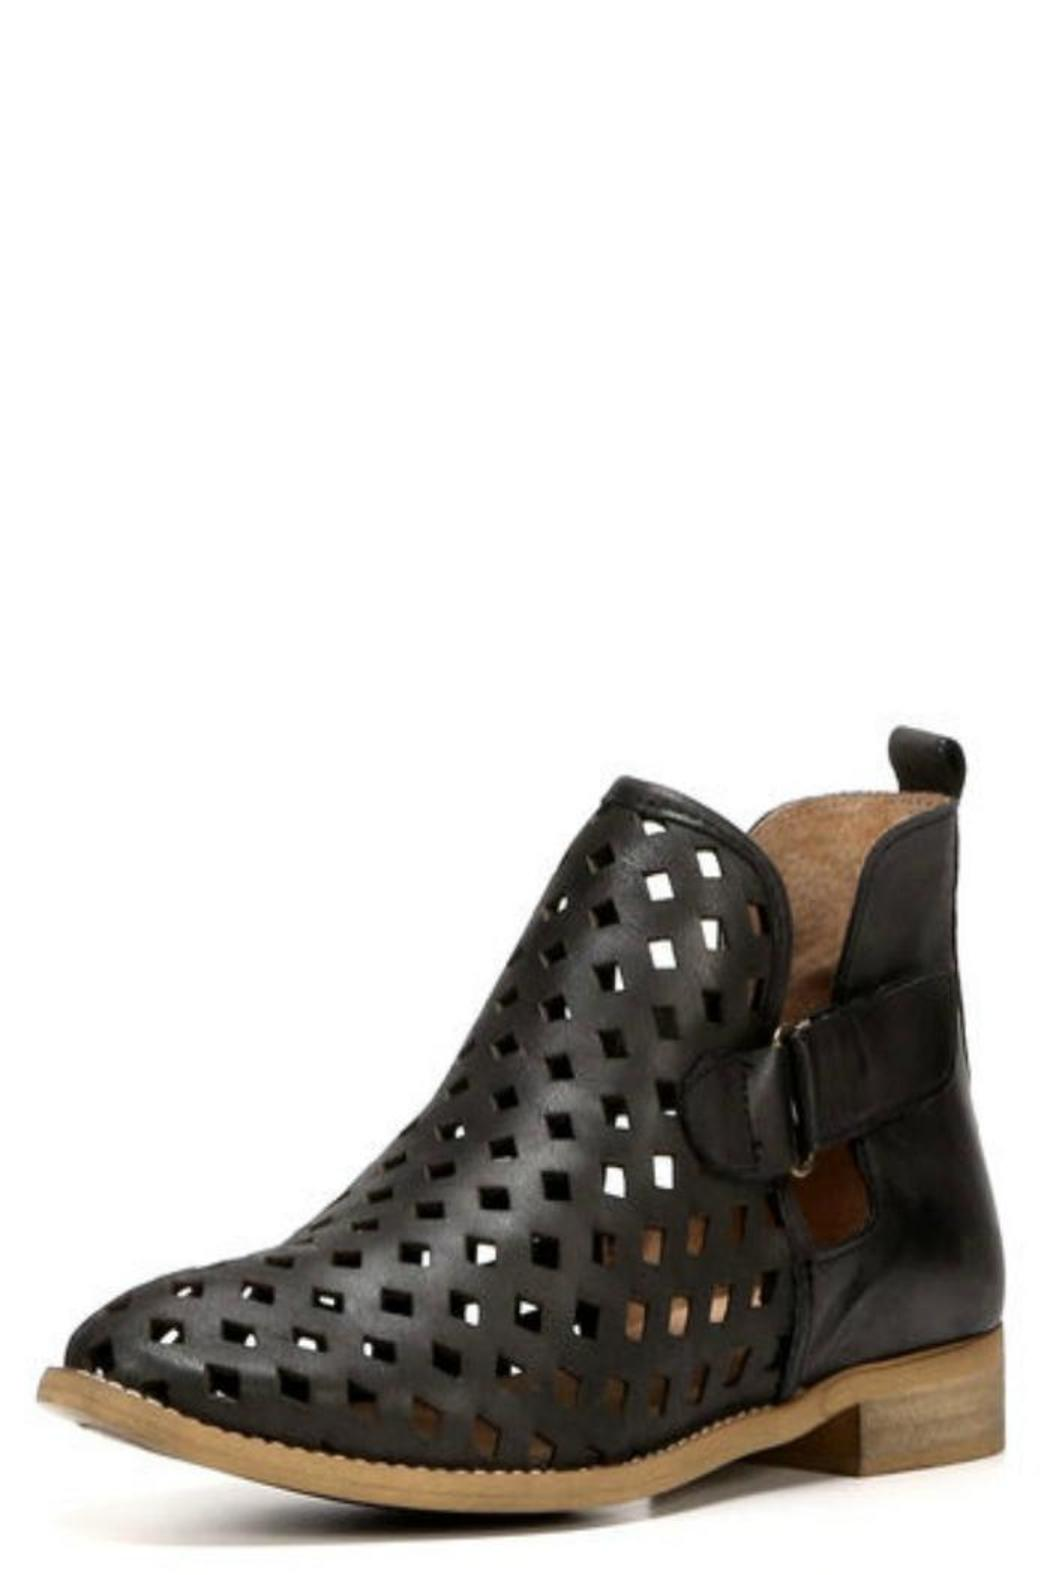 Caila Geometric Cutout Booties